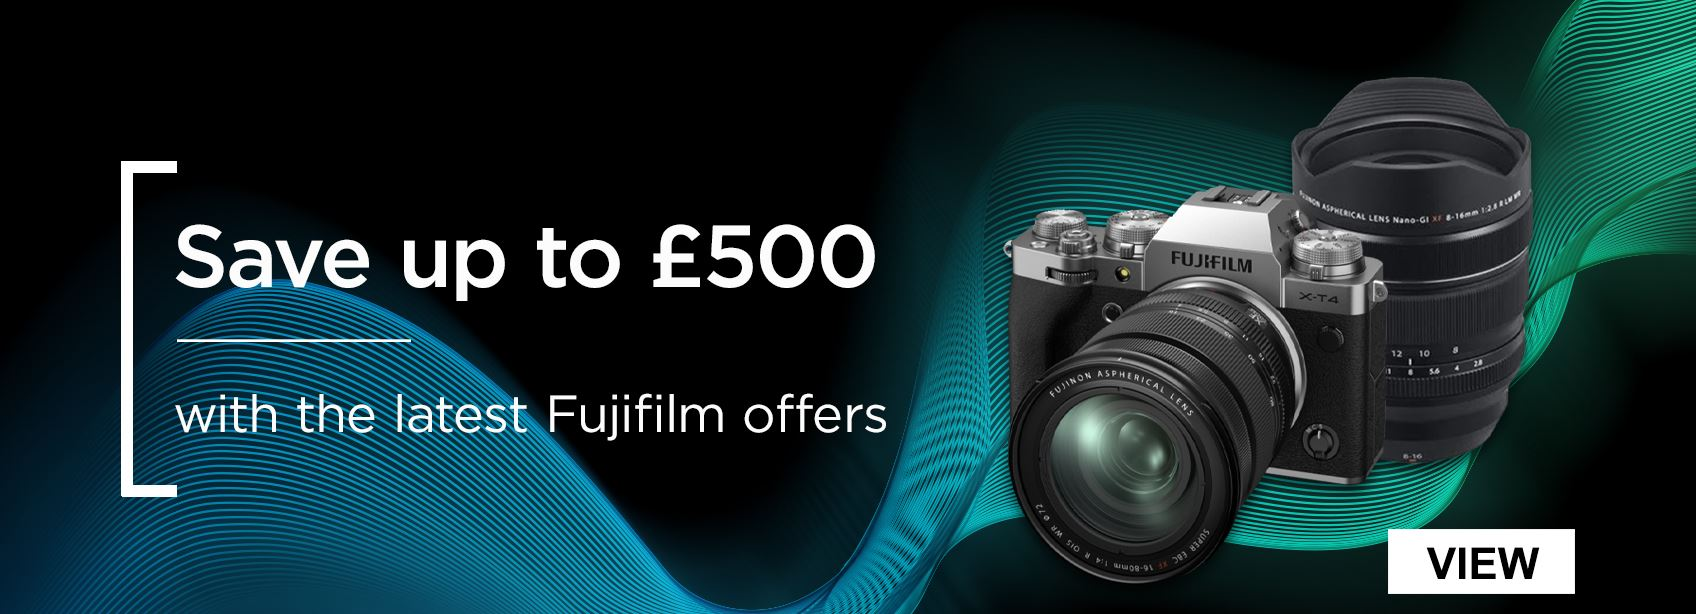 Save up to £500 with the latest Fujifilm offers